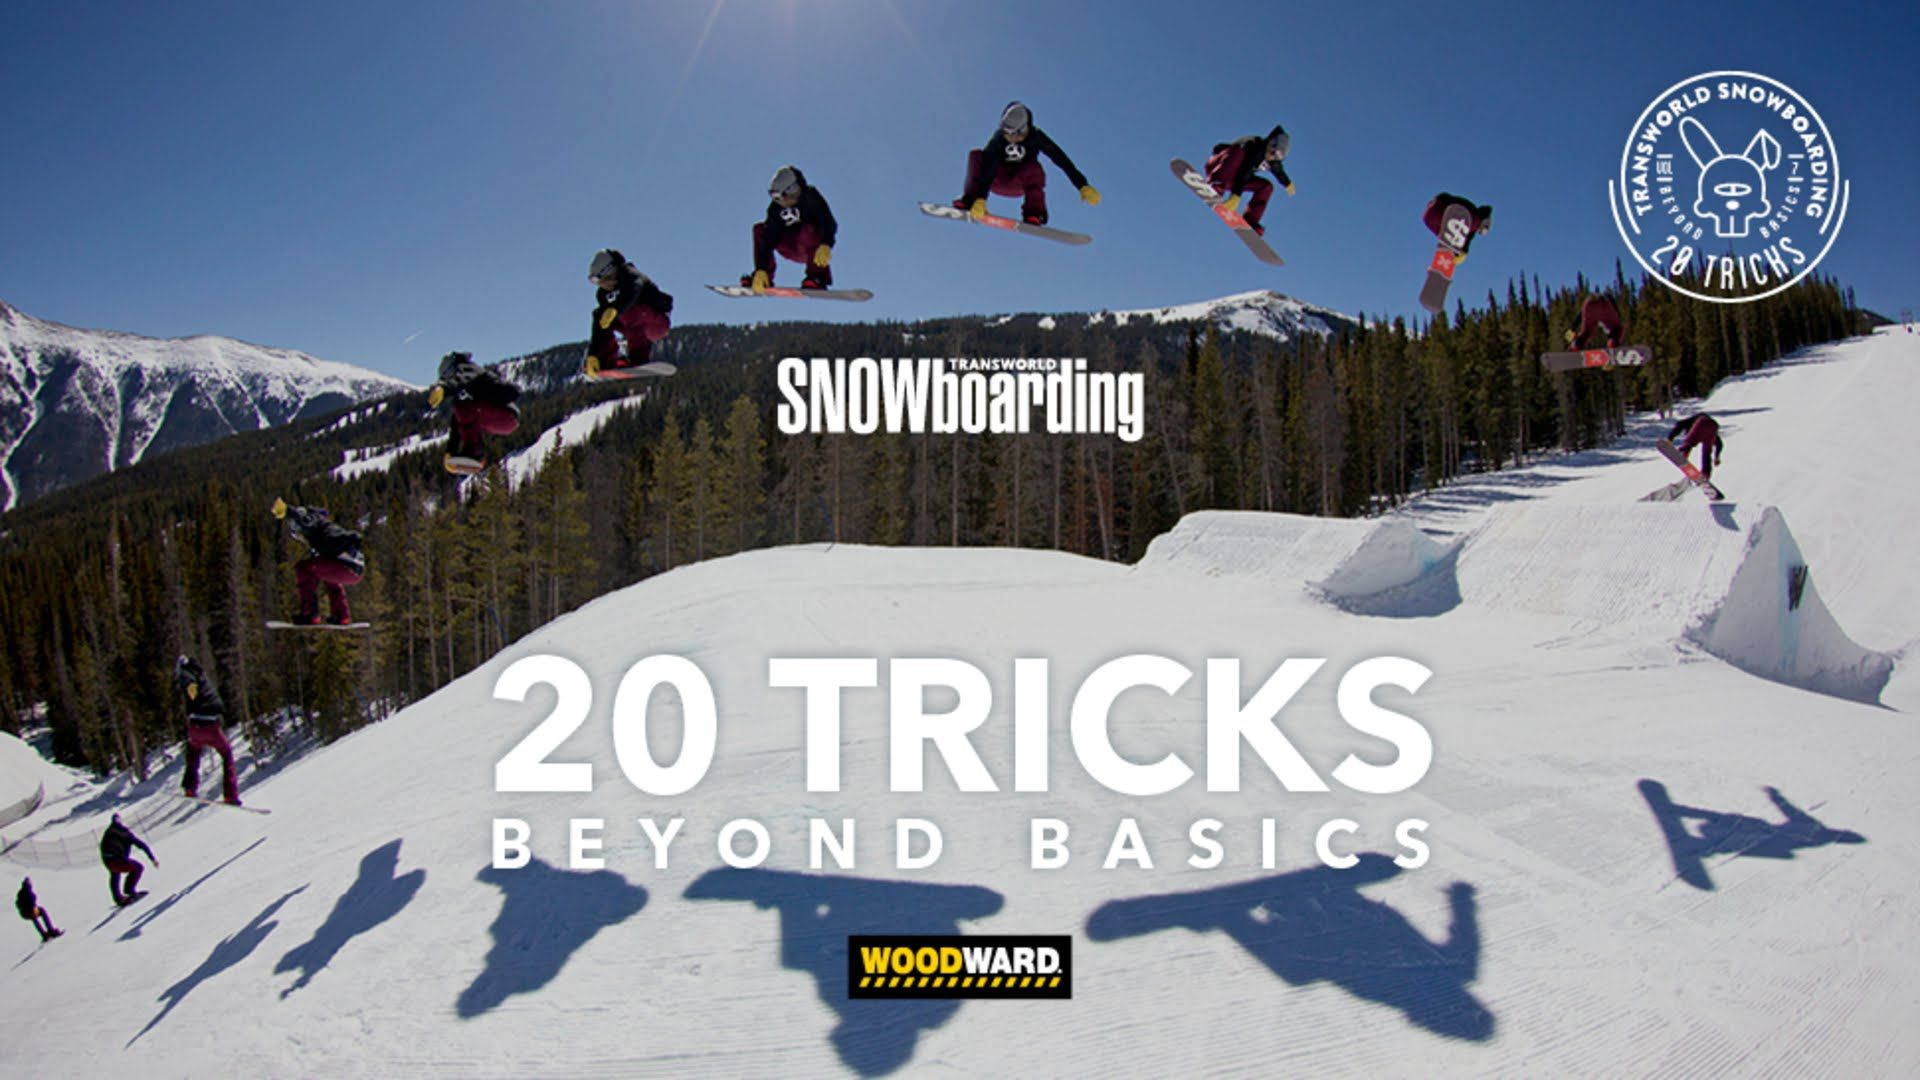 How To Snowboard Switch Backside 360 S With Chad Otterstrom Transworld Snowboarding Vulza Forg Transworld Snowboarding Snowboarding Videos Snowboarding